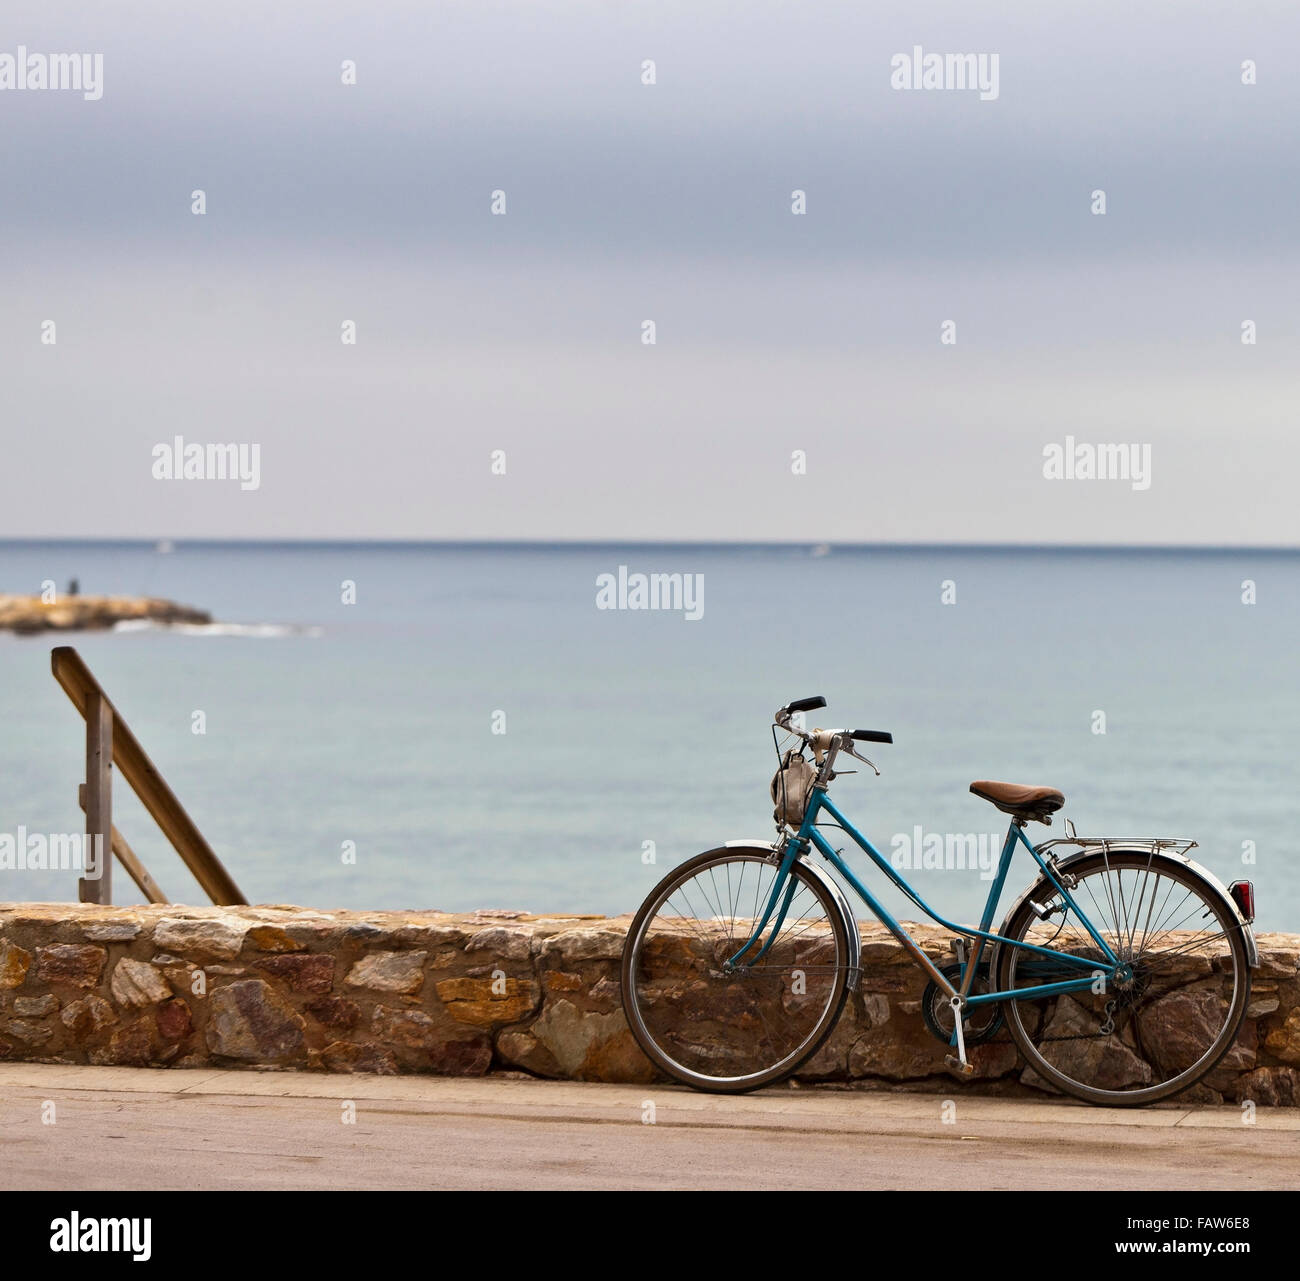 Vintage bike waiting for its owner  at the beach on a day with melancholic atmosphere - Stock Image